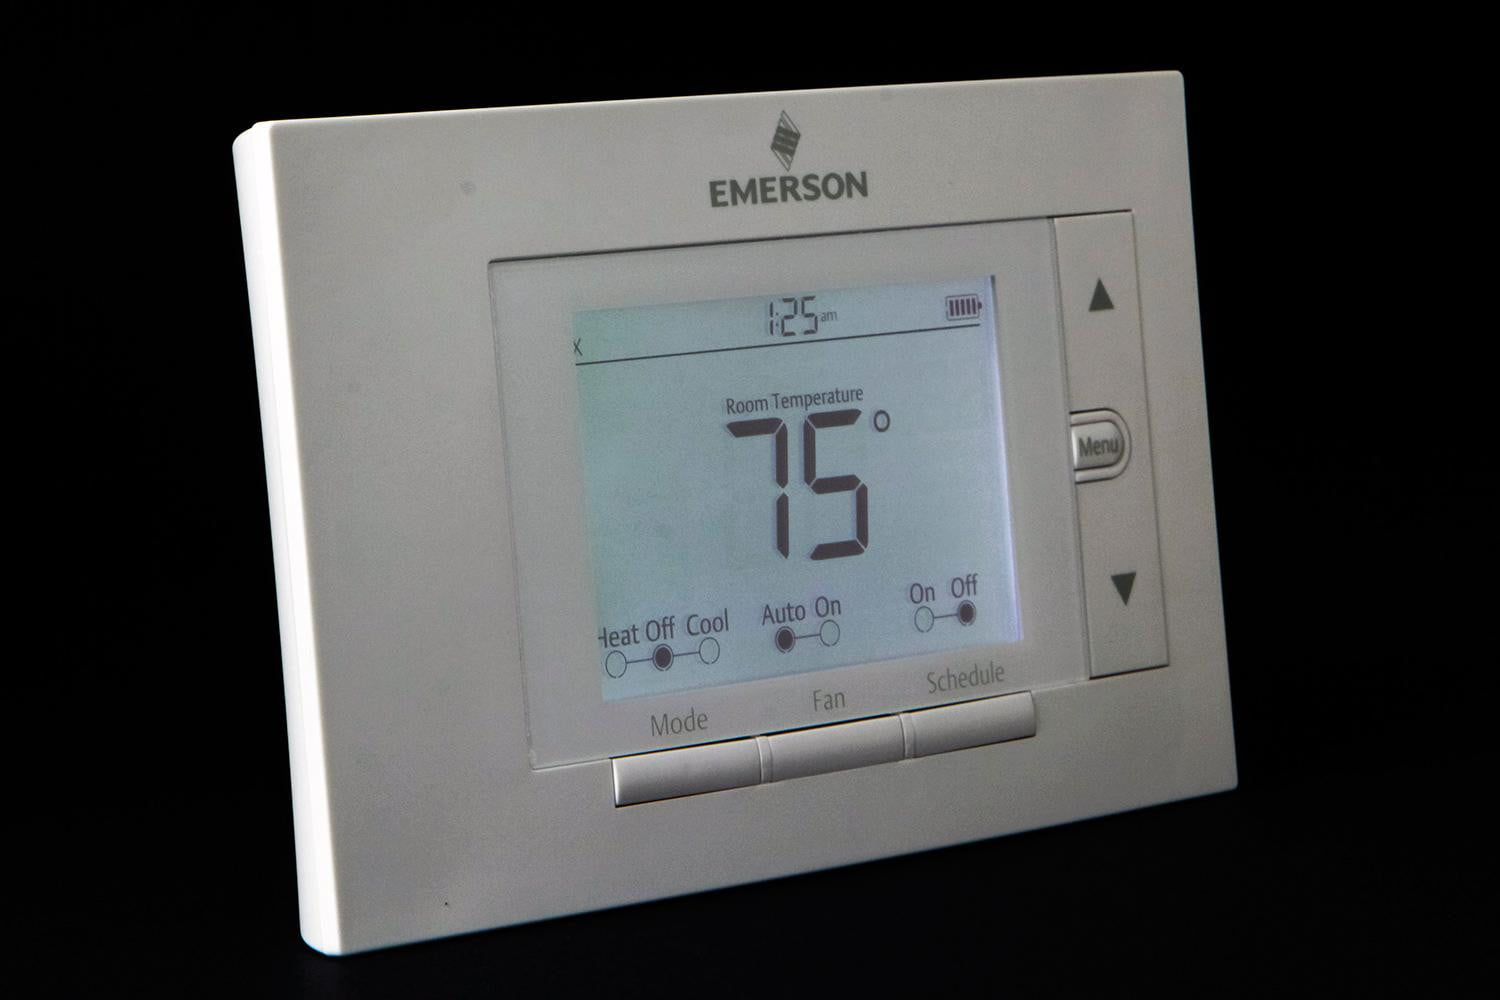 wiring diagram emerson digital thermostat the wiring diagram emerson thermostat wiring diagram nilza wiring diagram